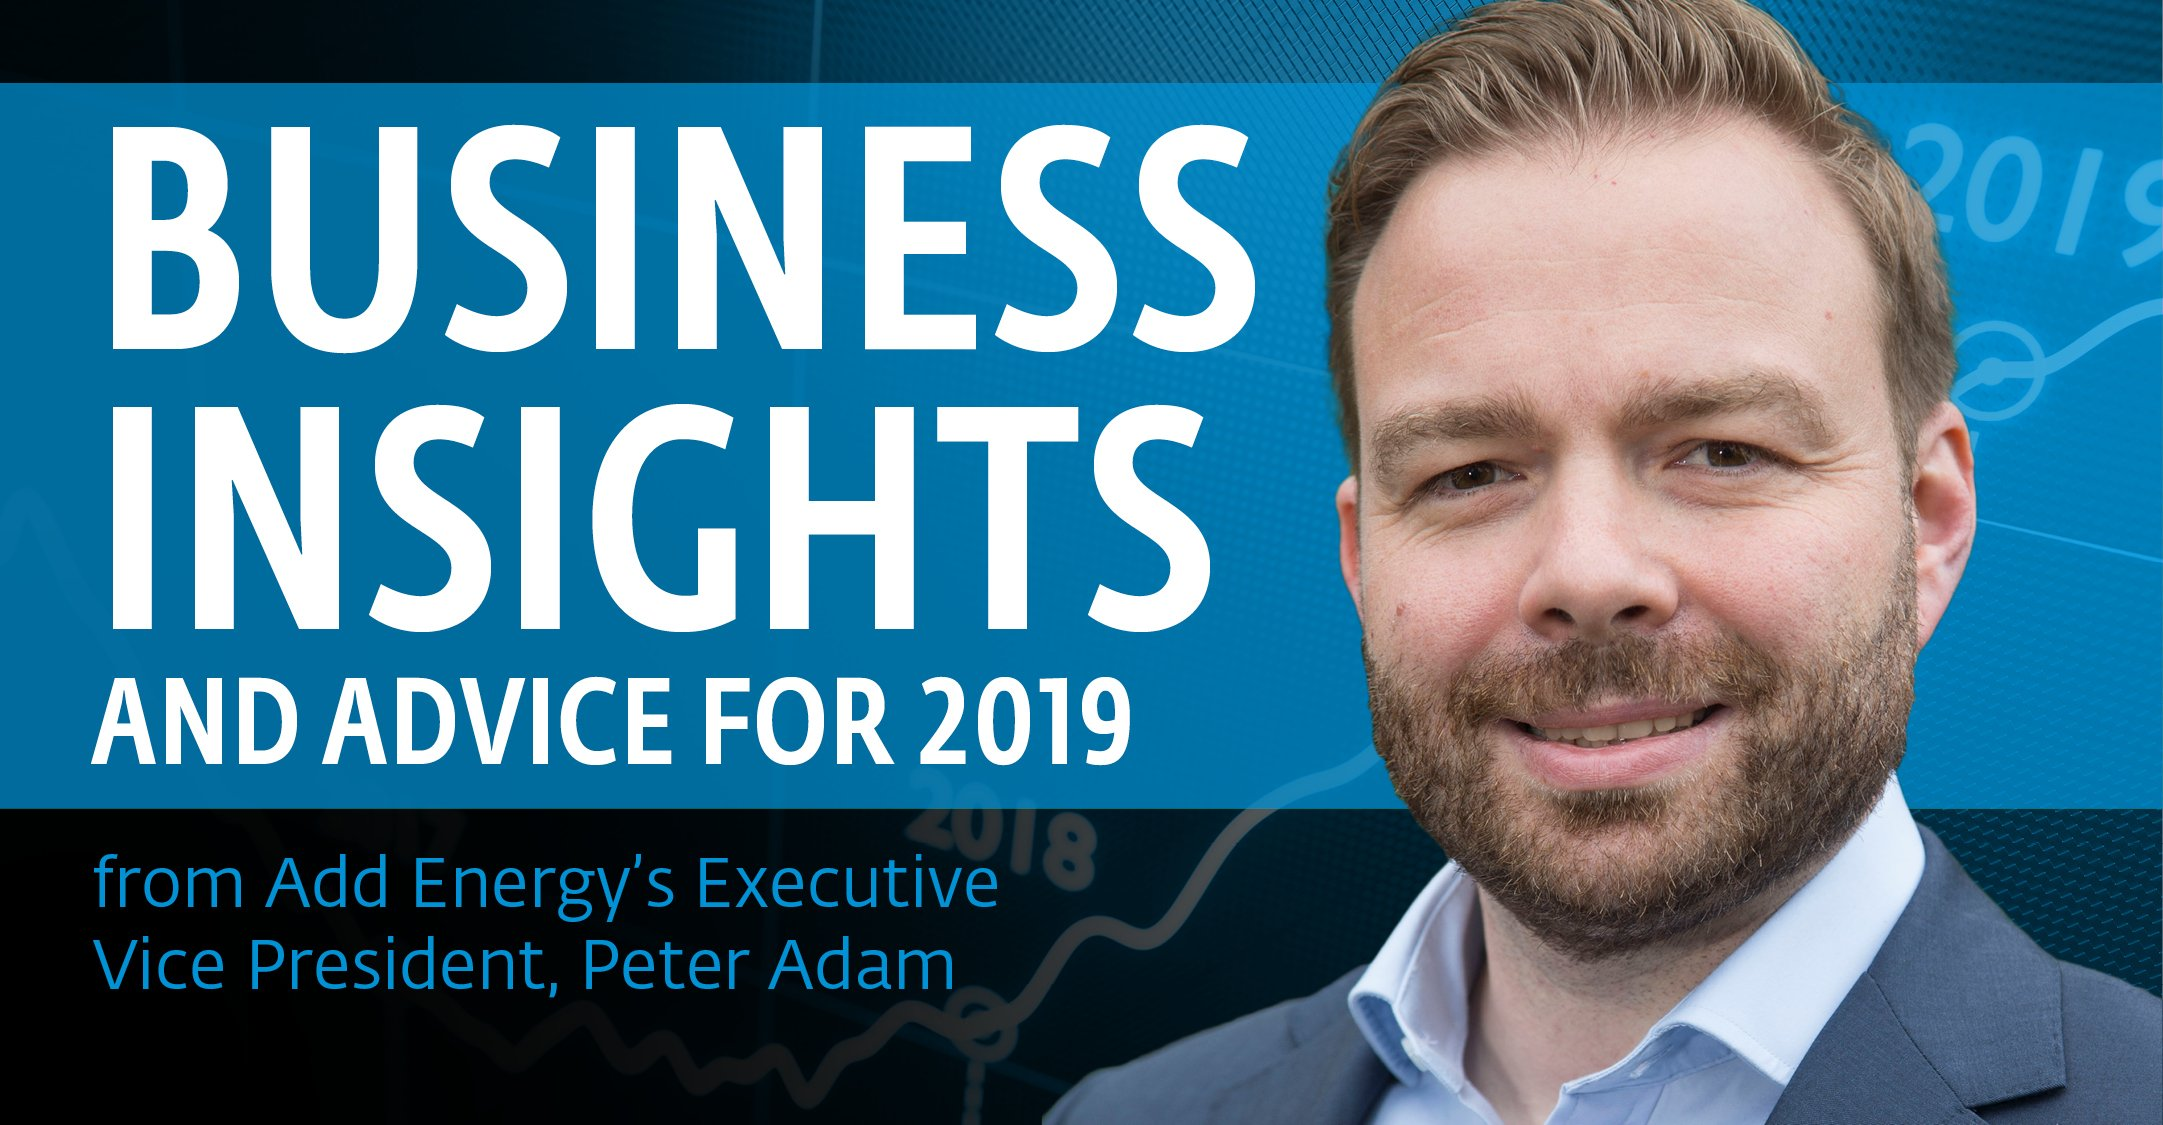 Business insights and advice for 2019 from Add Energy's EVP, Peter Adam